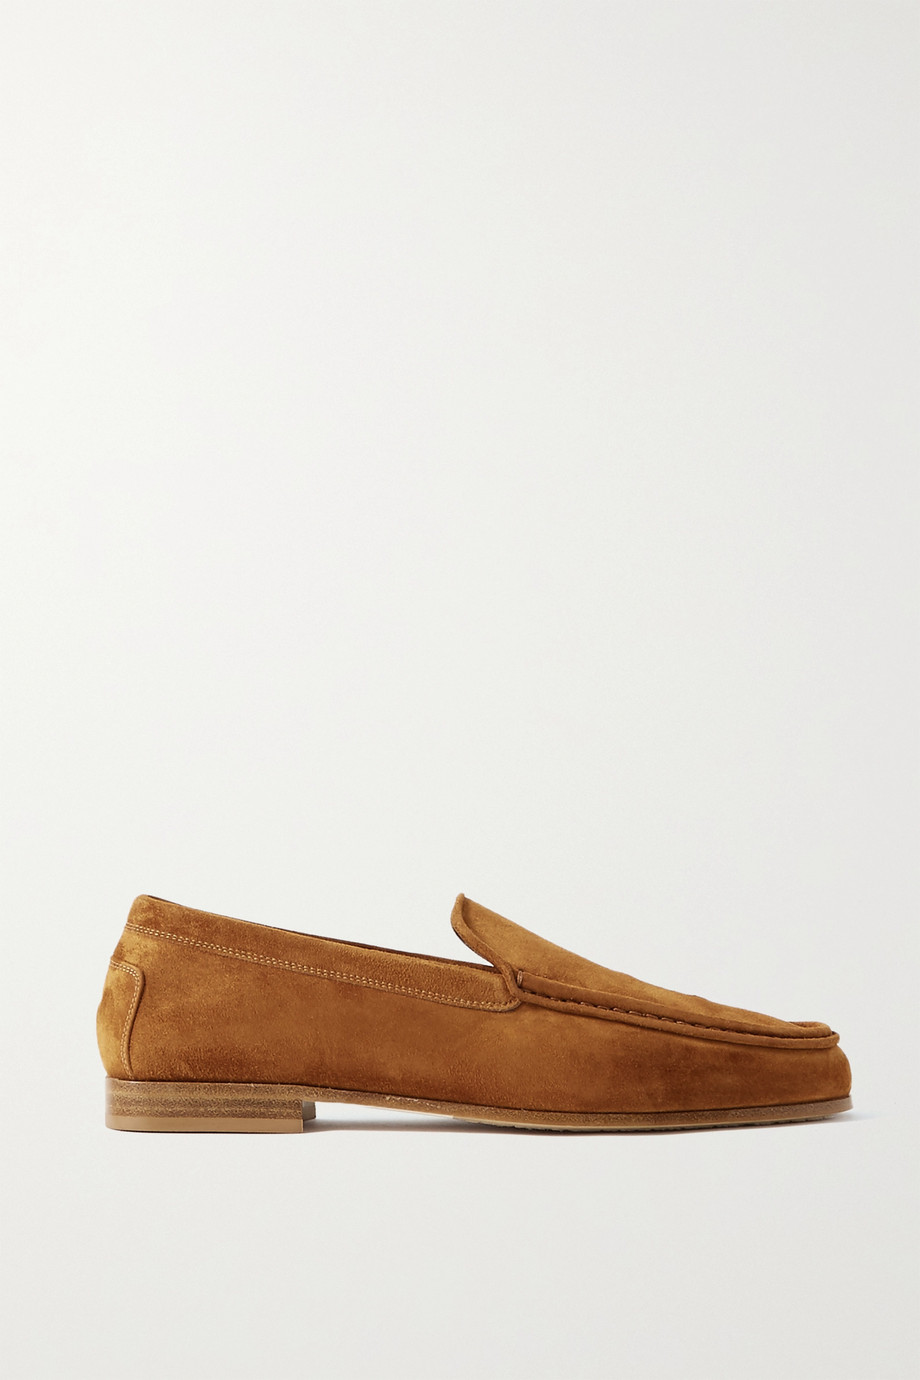 KHAITE Suede loafers